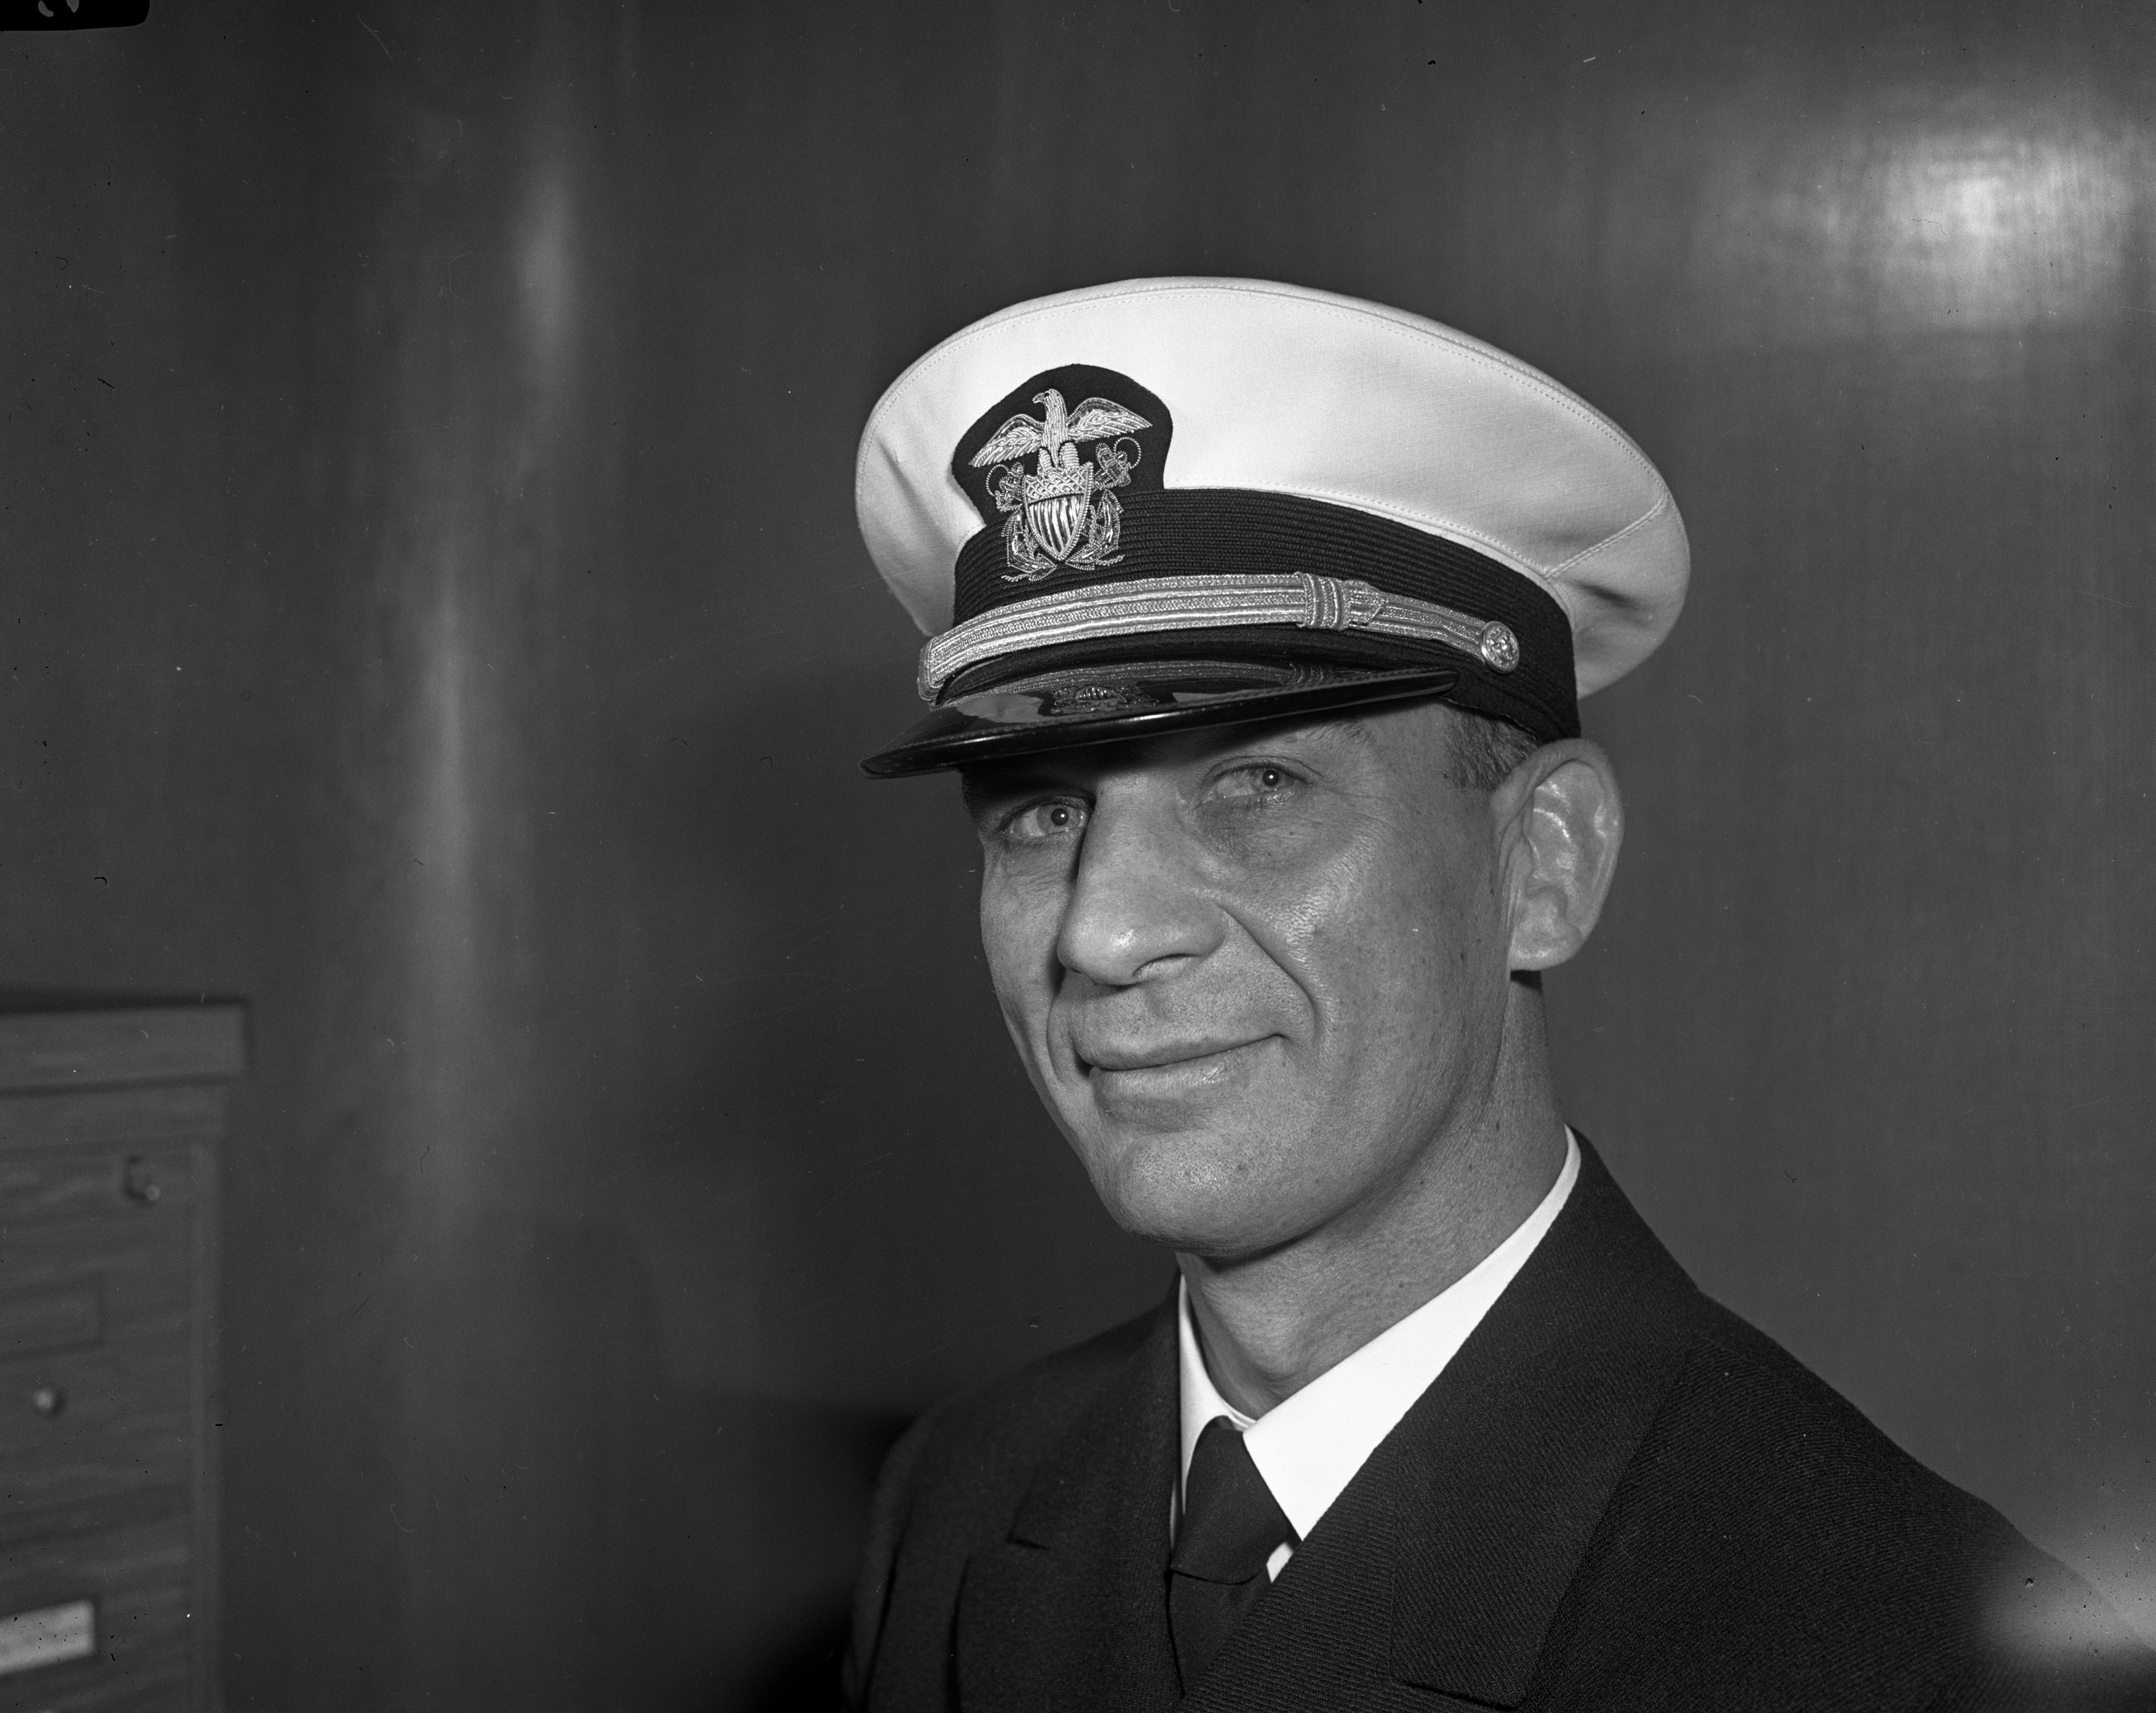 Lieutenant Commander Cliff Keen, USN, May 1942 image